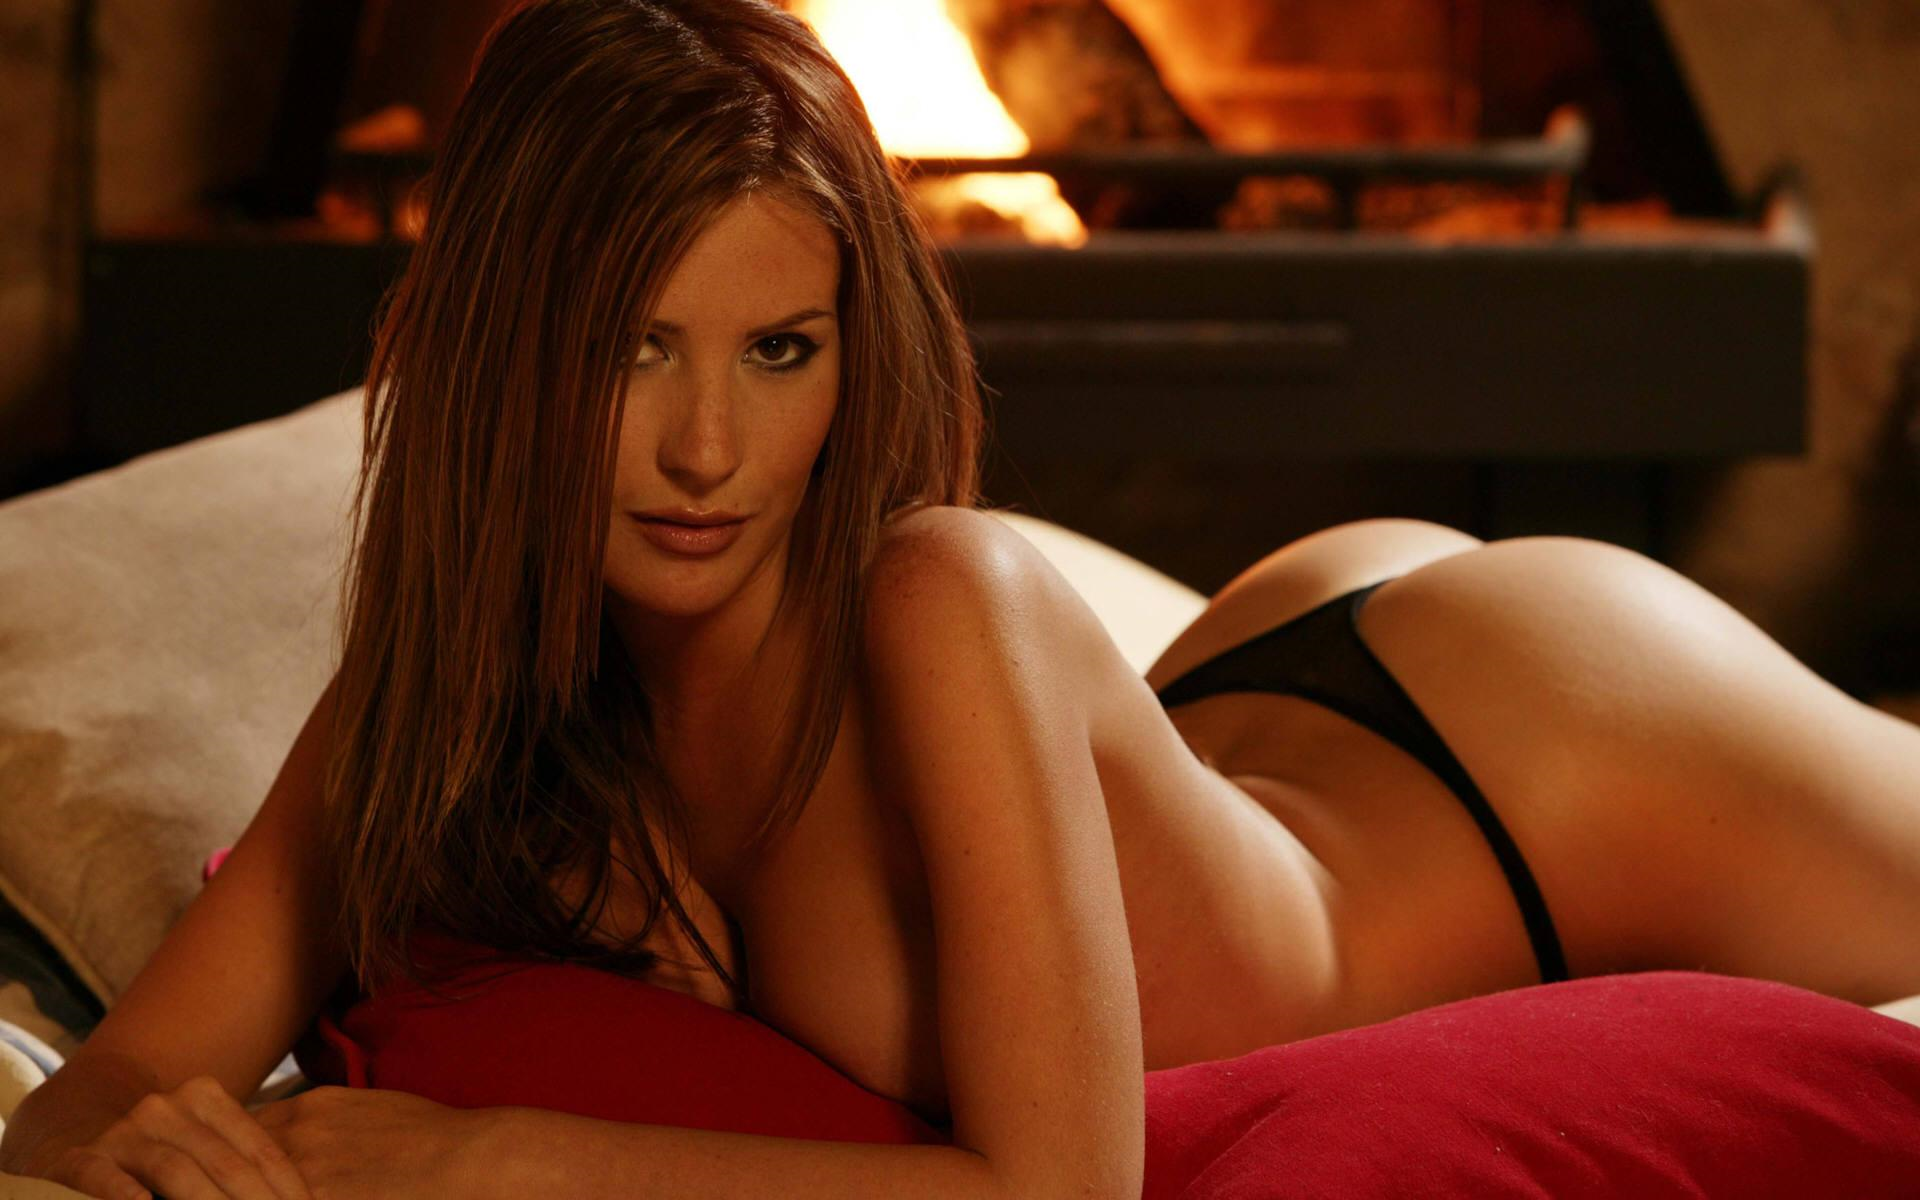 Angie Everhart in lingerie - ass